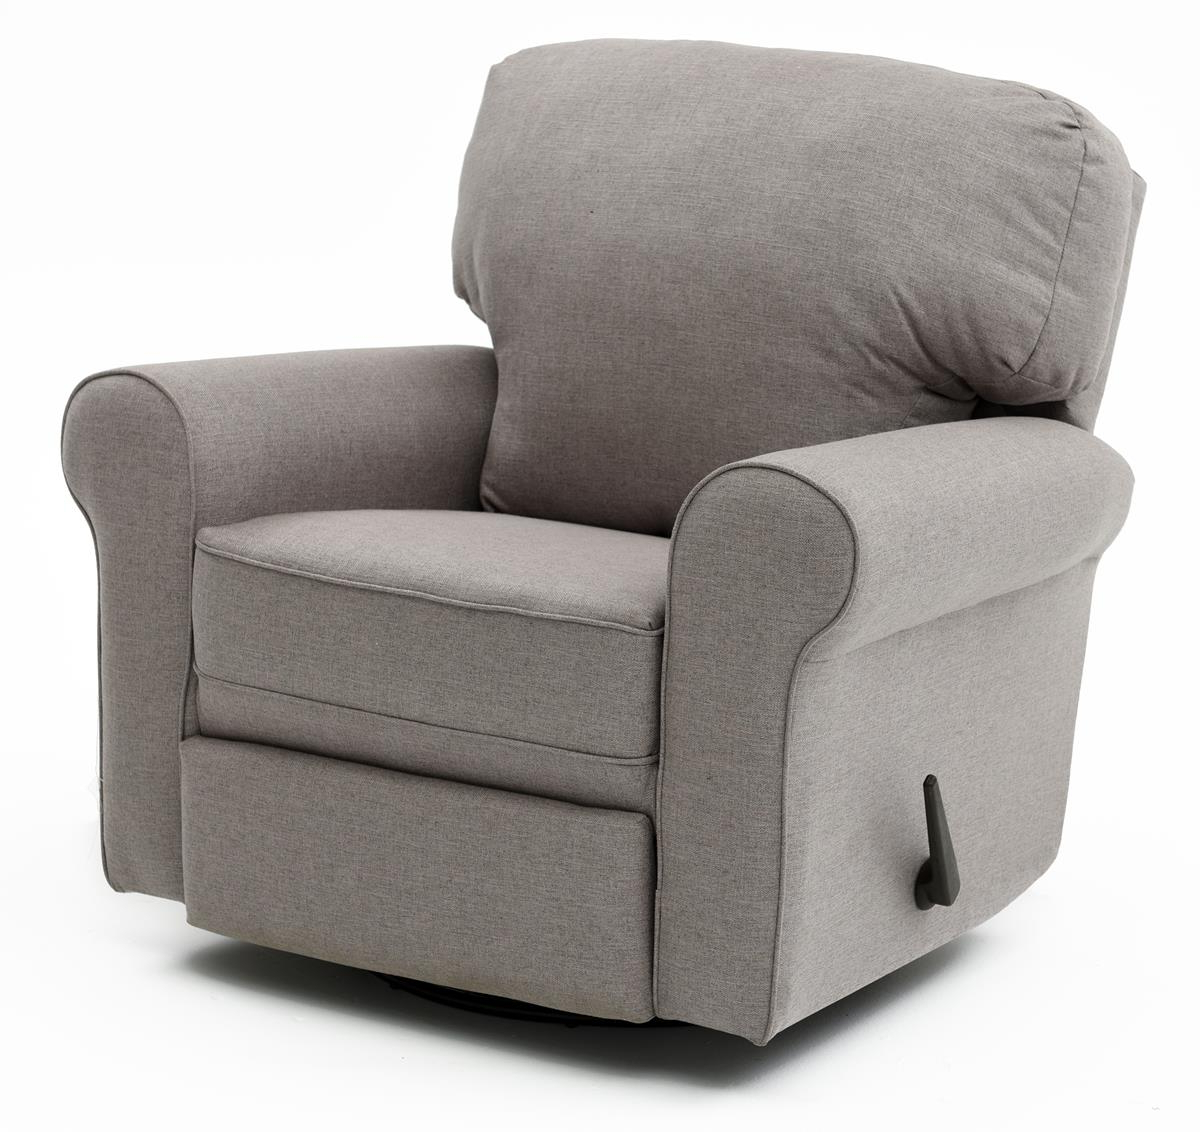 Famous Decker Ii Fabric Swivel Rocker Recliners Inside Leather Swivel Rocker Recliner And Its Benefits (View 7 of 20)